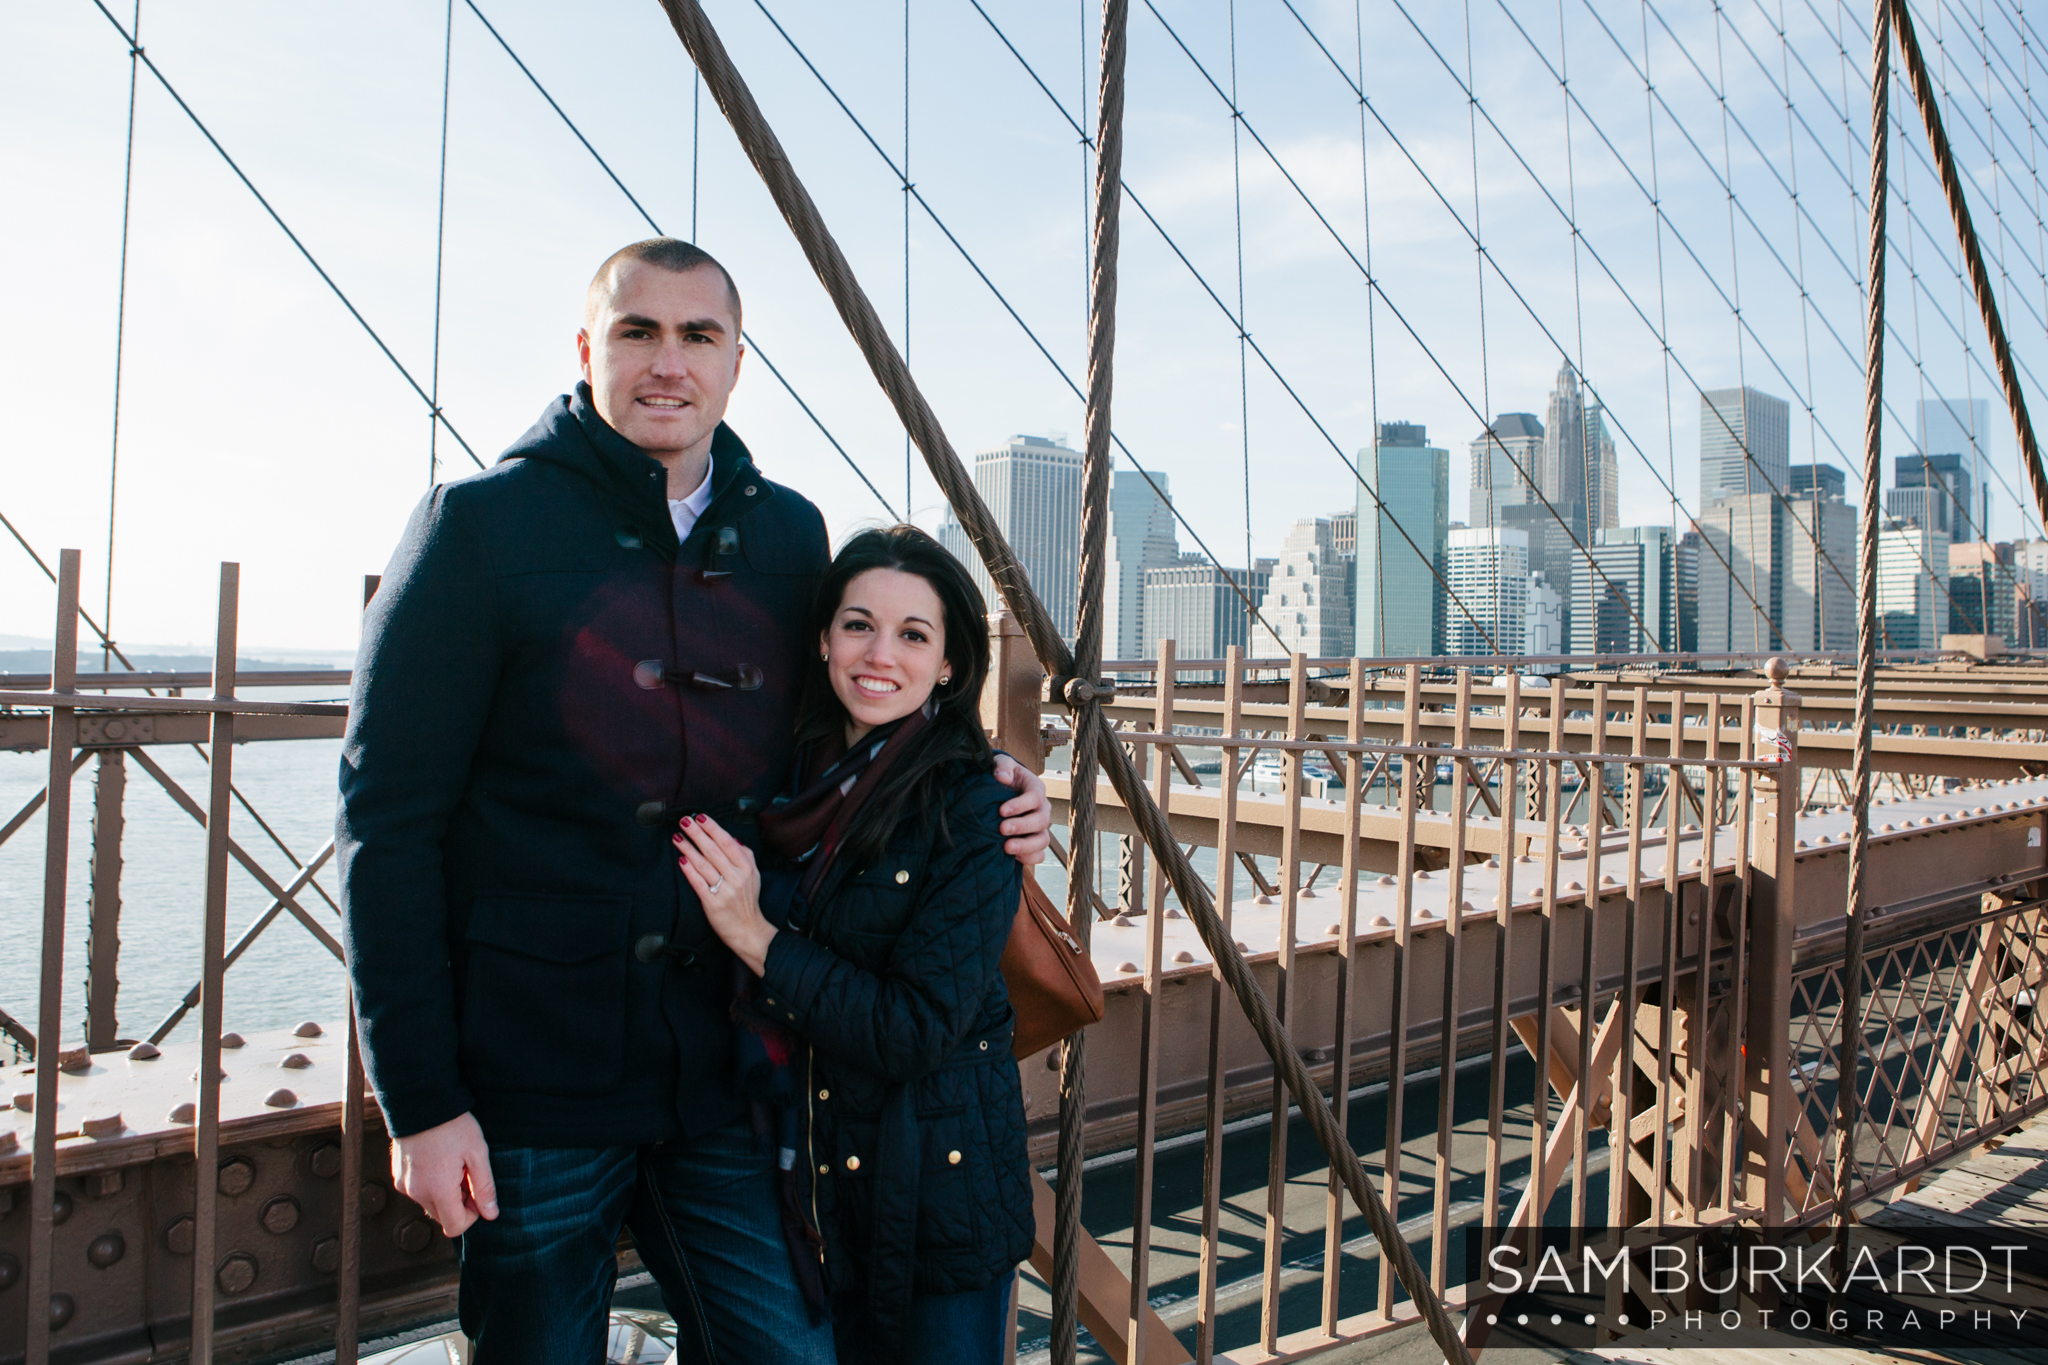 samburkardt_brooklyn_bridge_new_york_engagement_proposal_skyline_0023.jpg